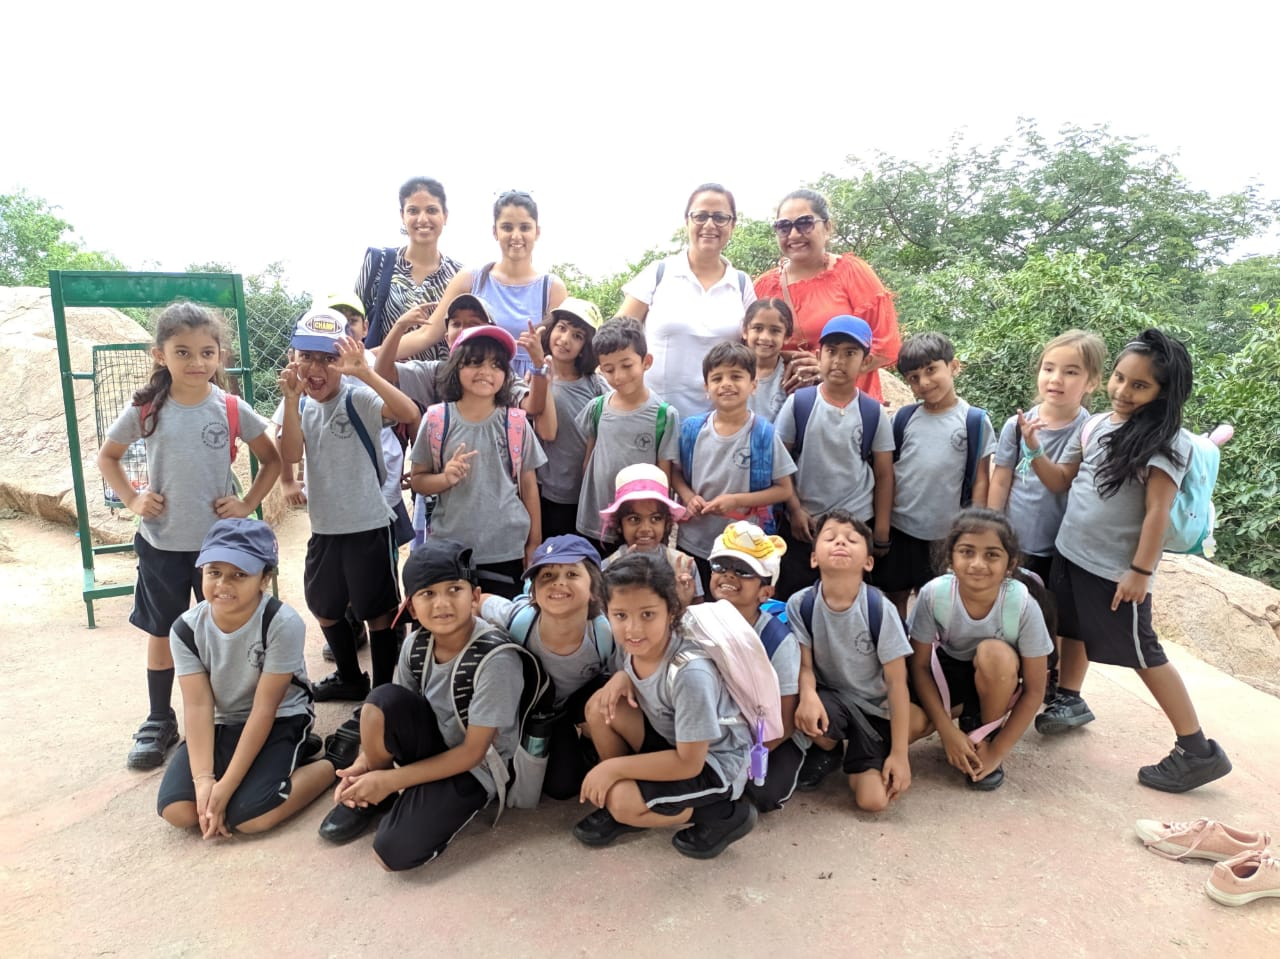 Laboni with her Grade 3 class on a field trip